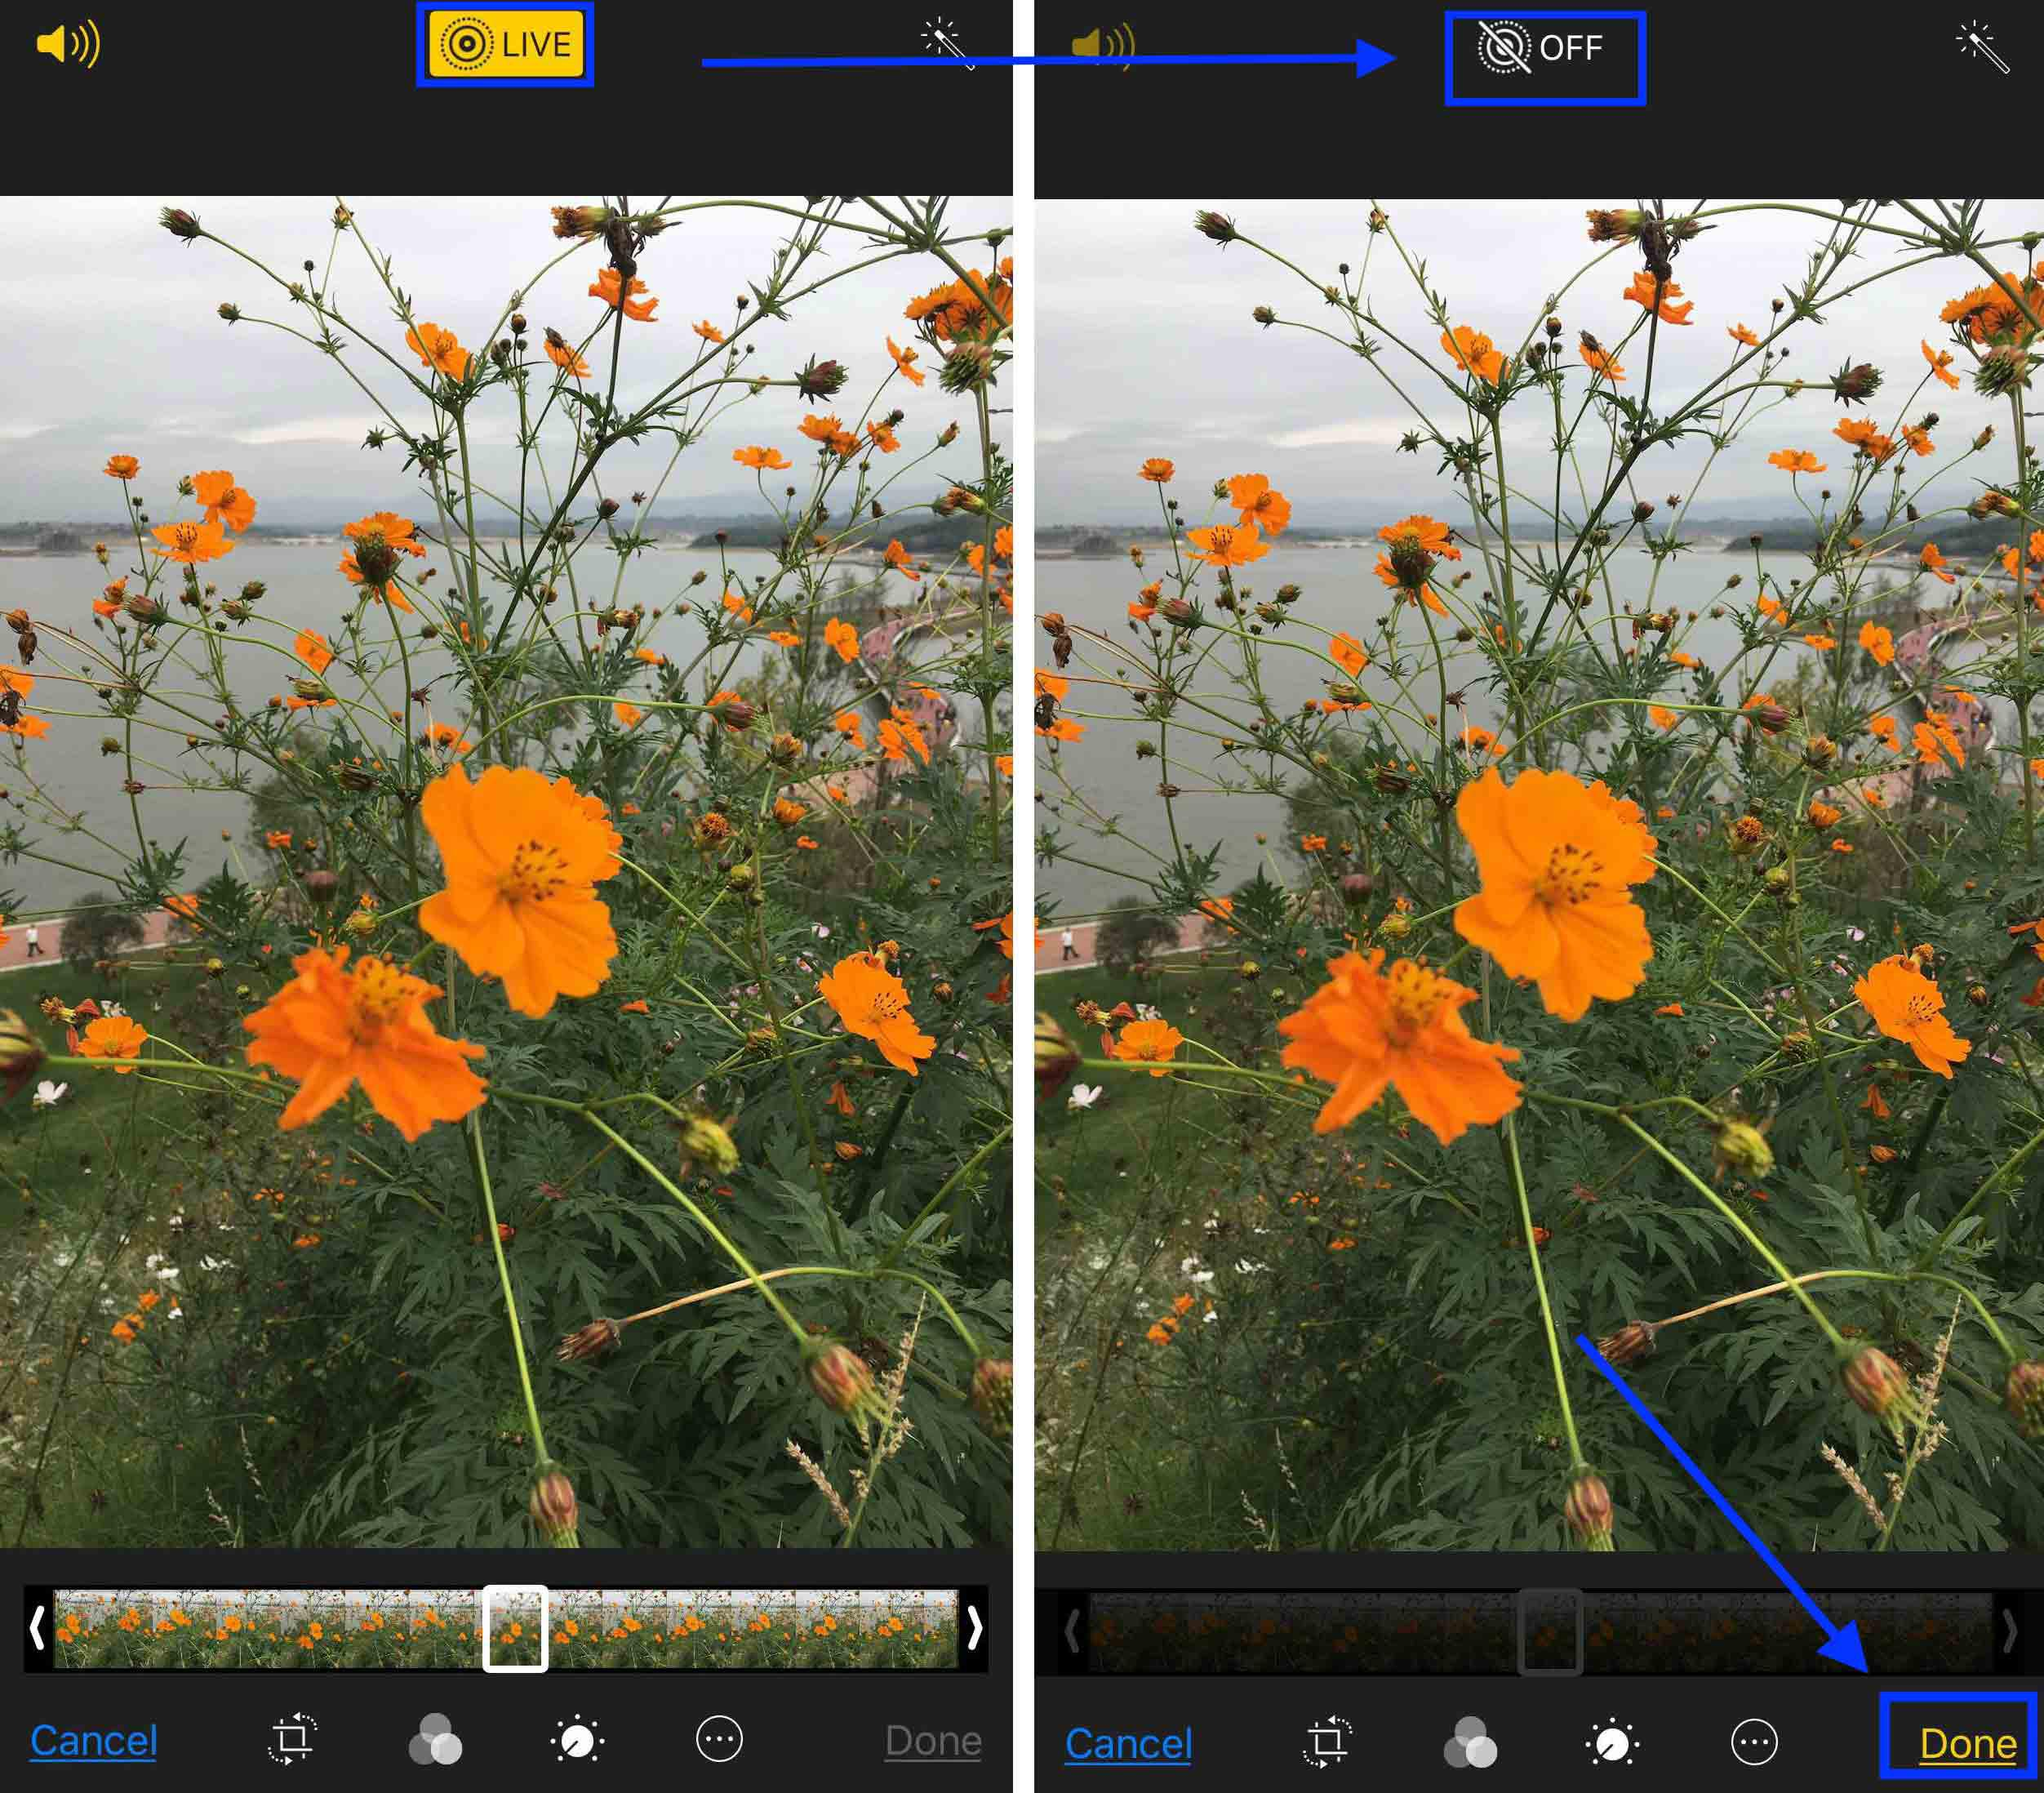 How to Take A Still from A Live Photo by Photo Editing - Step 2